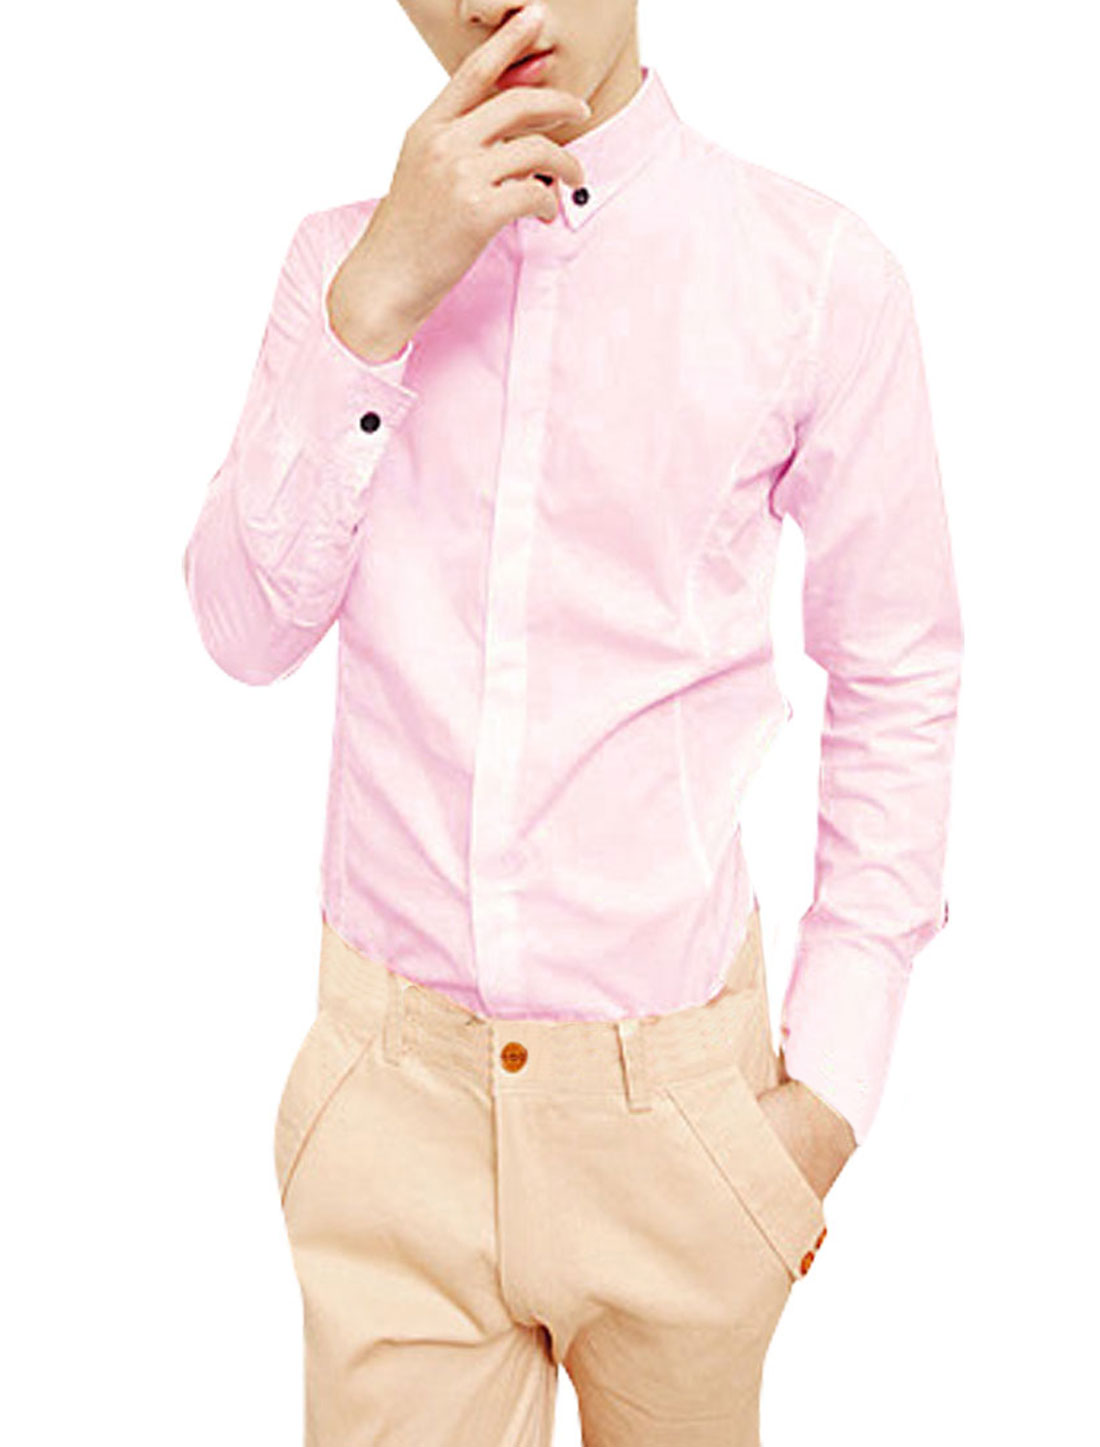 Mens New Fashion Pink Buttoned Cuff Long Sleeve Spring Bottoming Shirt M